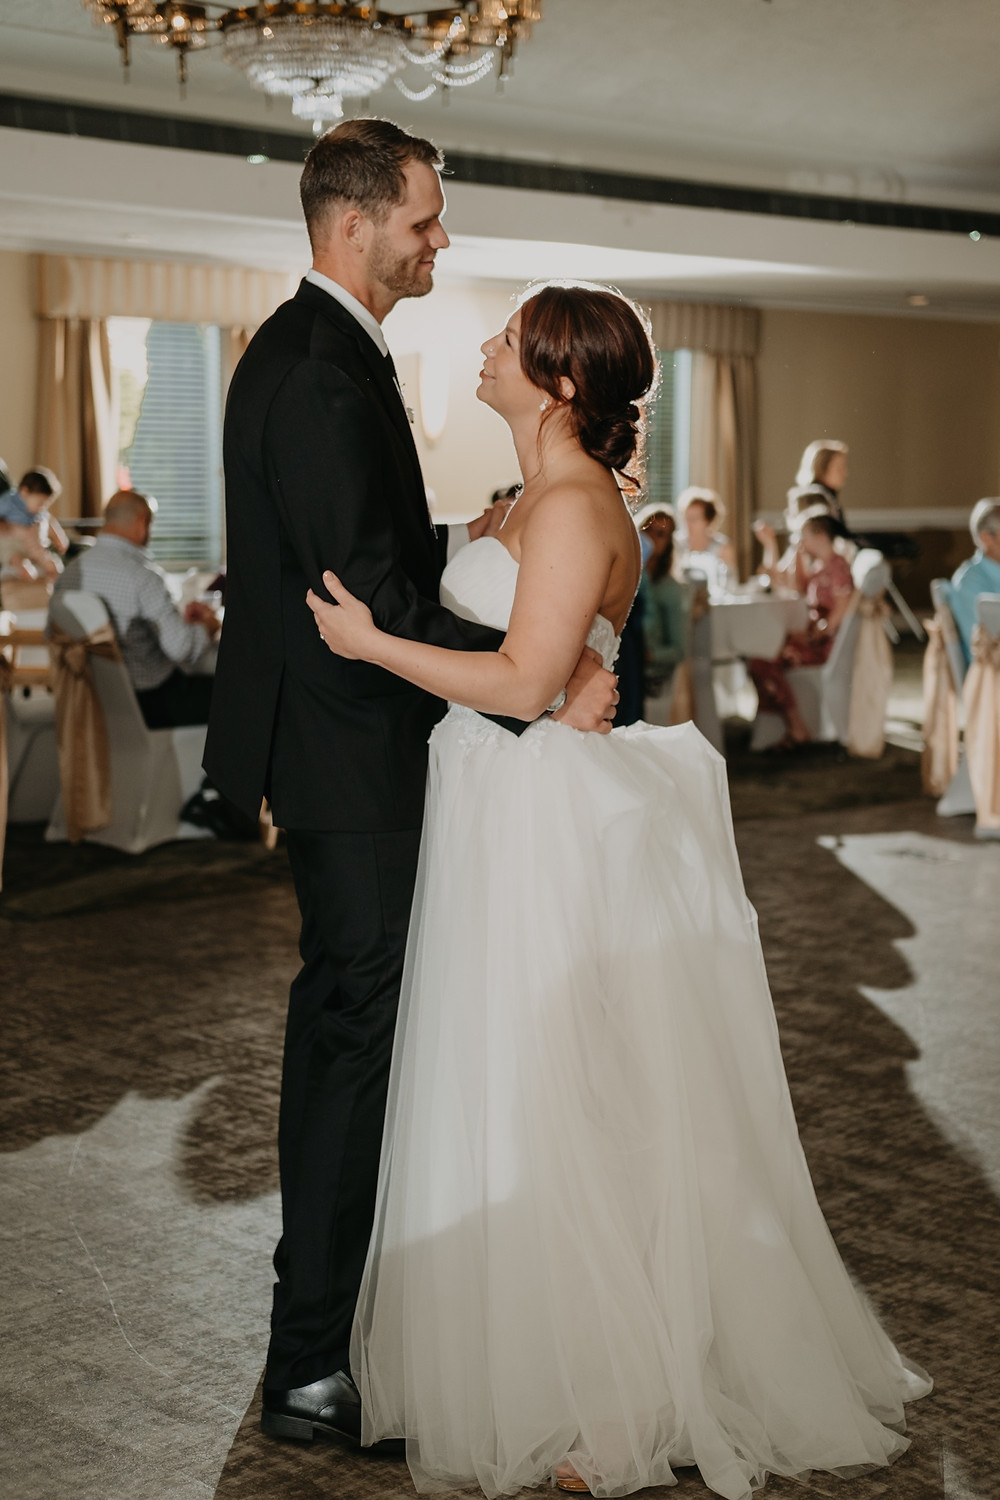 Bride and groom first dance. Photographed by Nicole Leanne Photography.